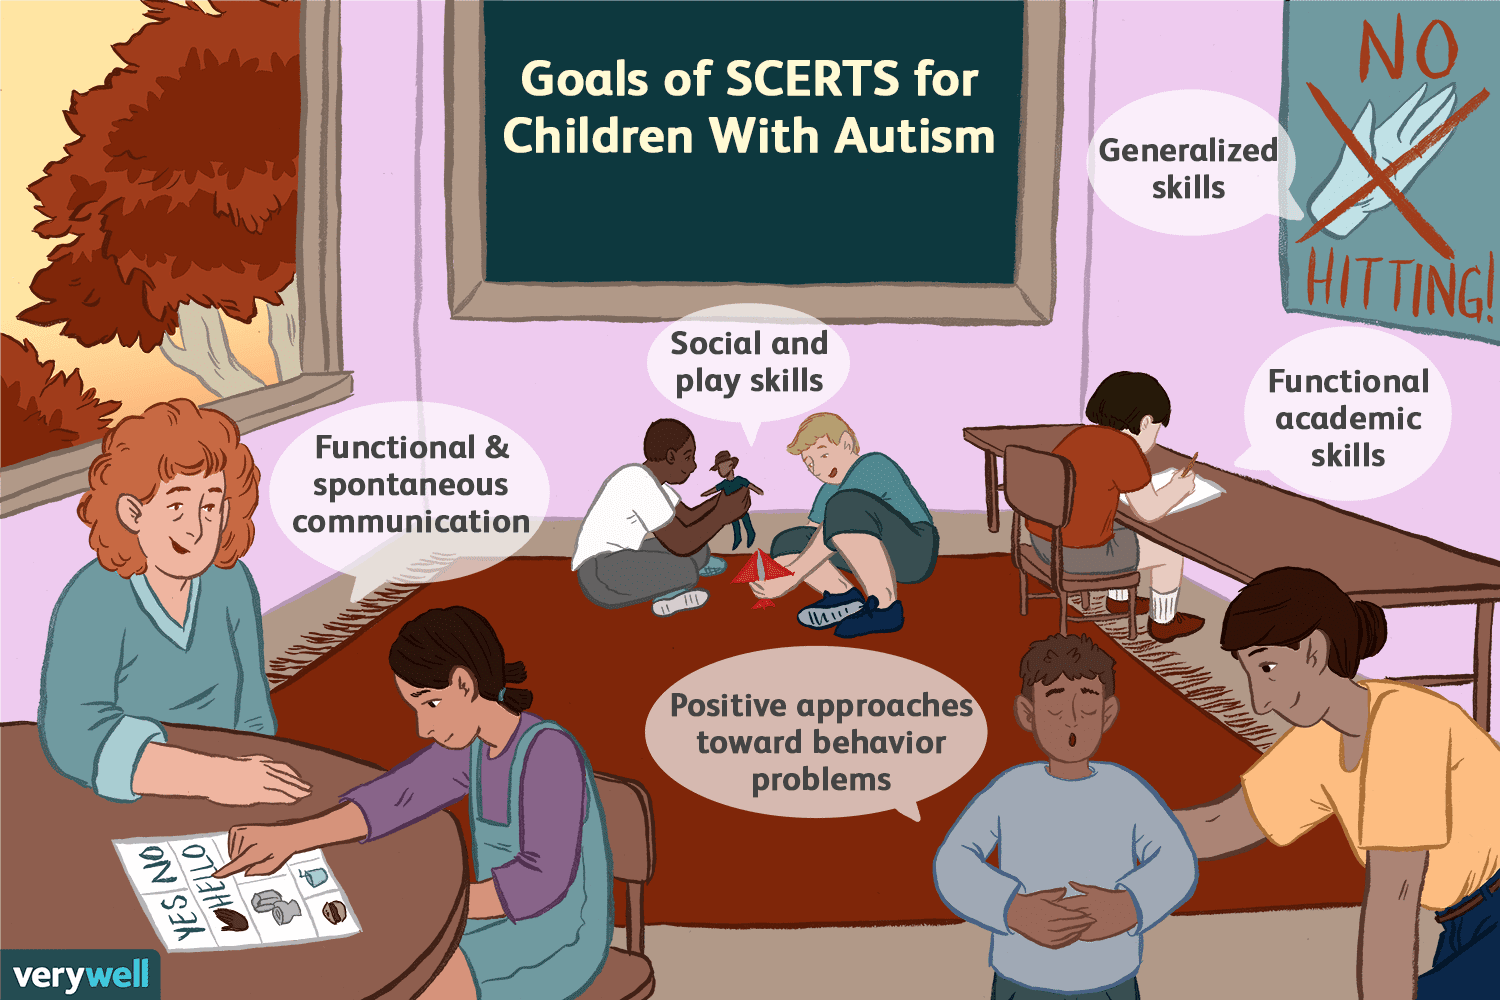 The SCERTS Model for Children With Autism